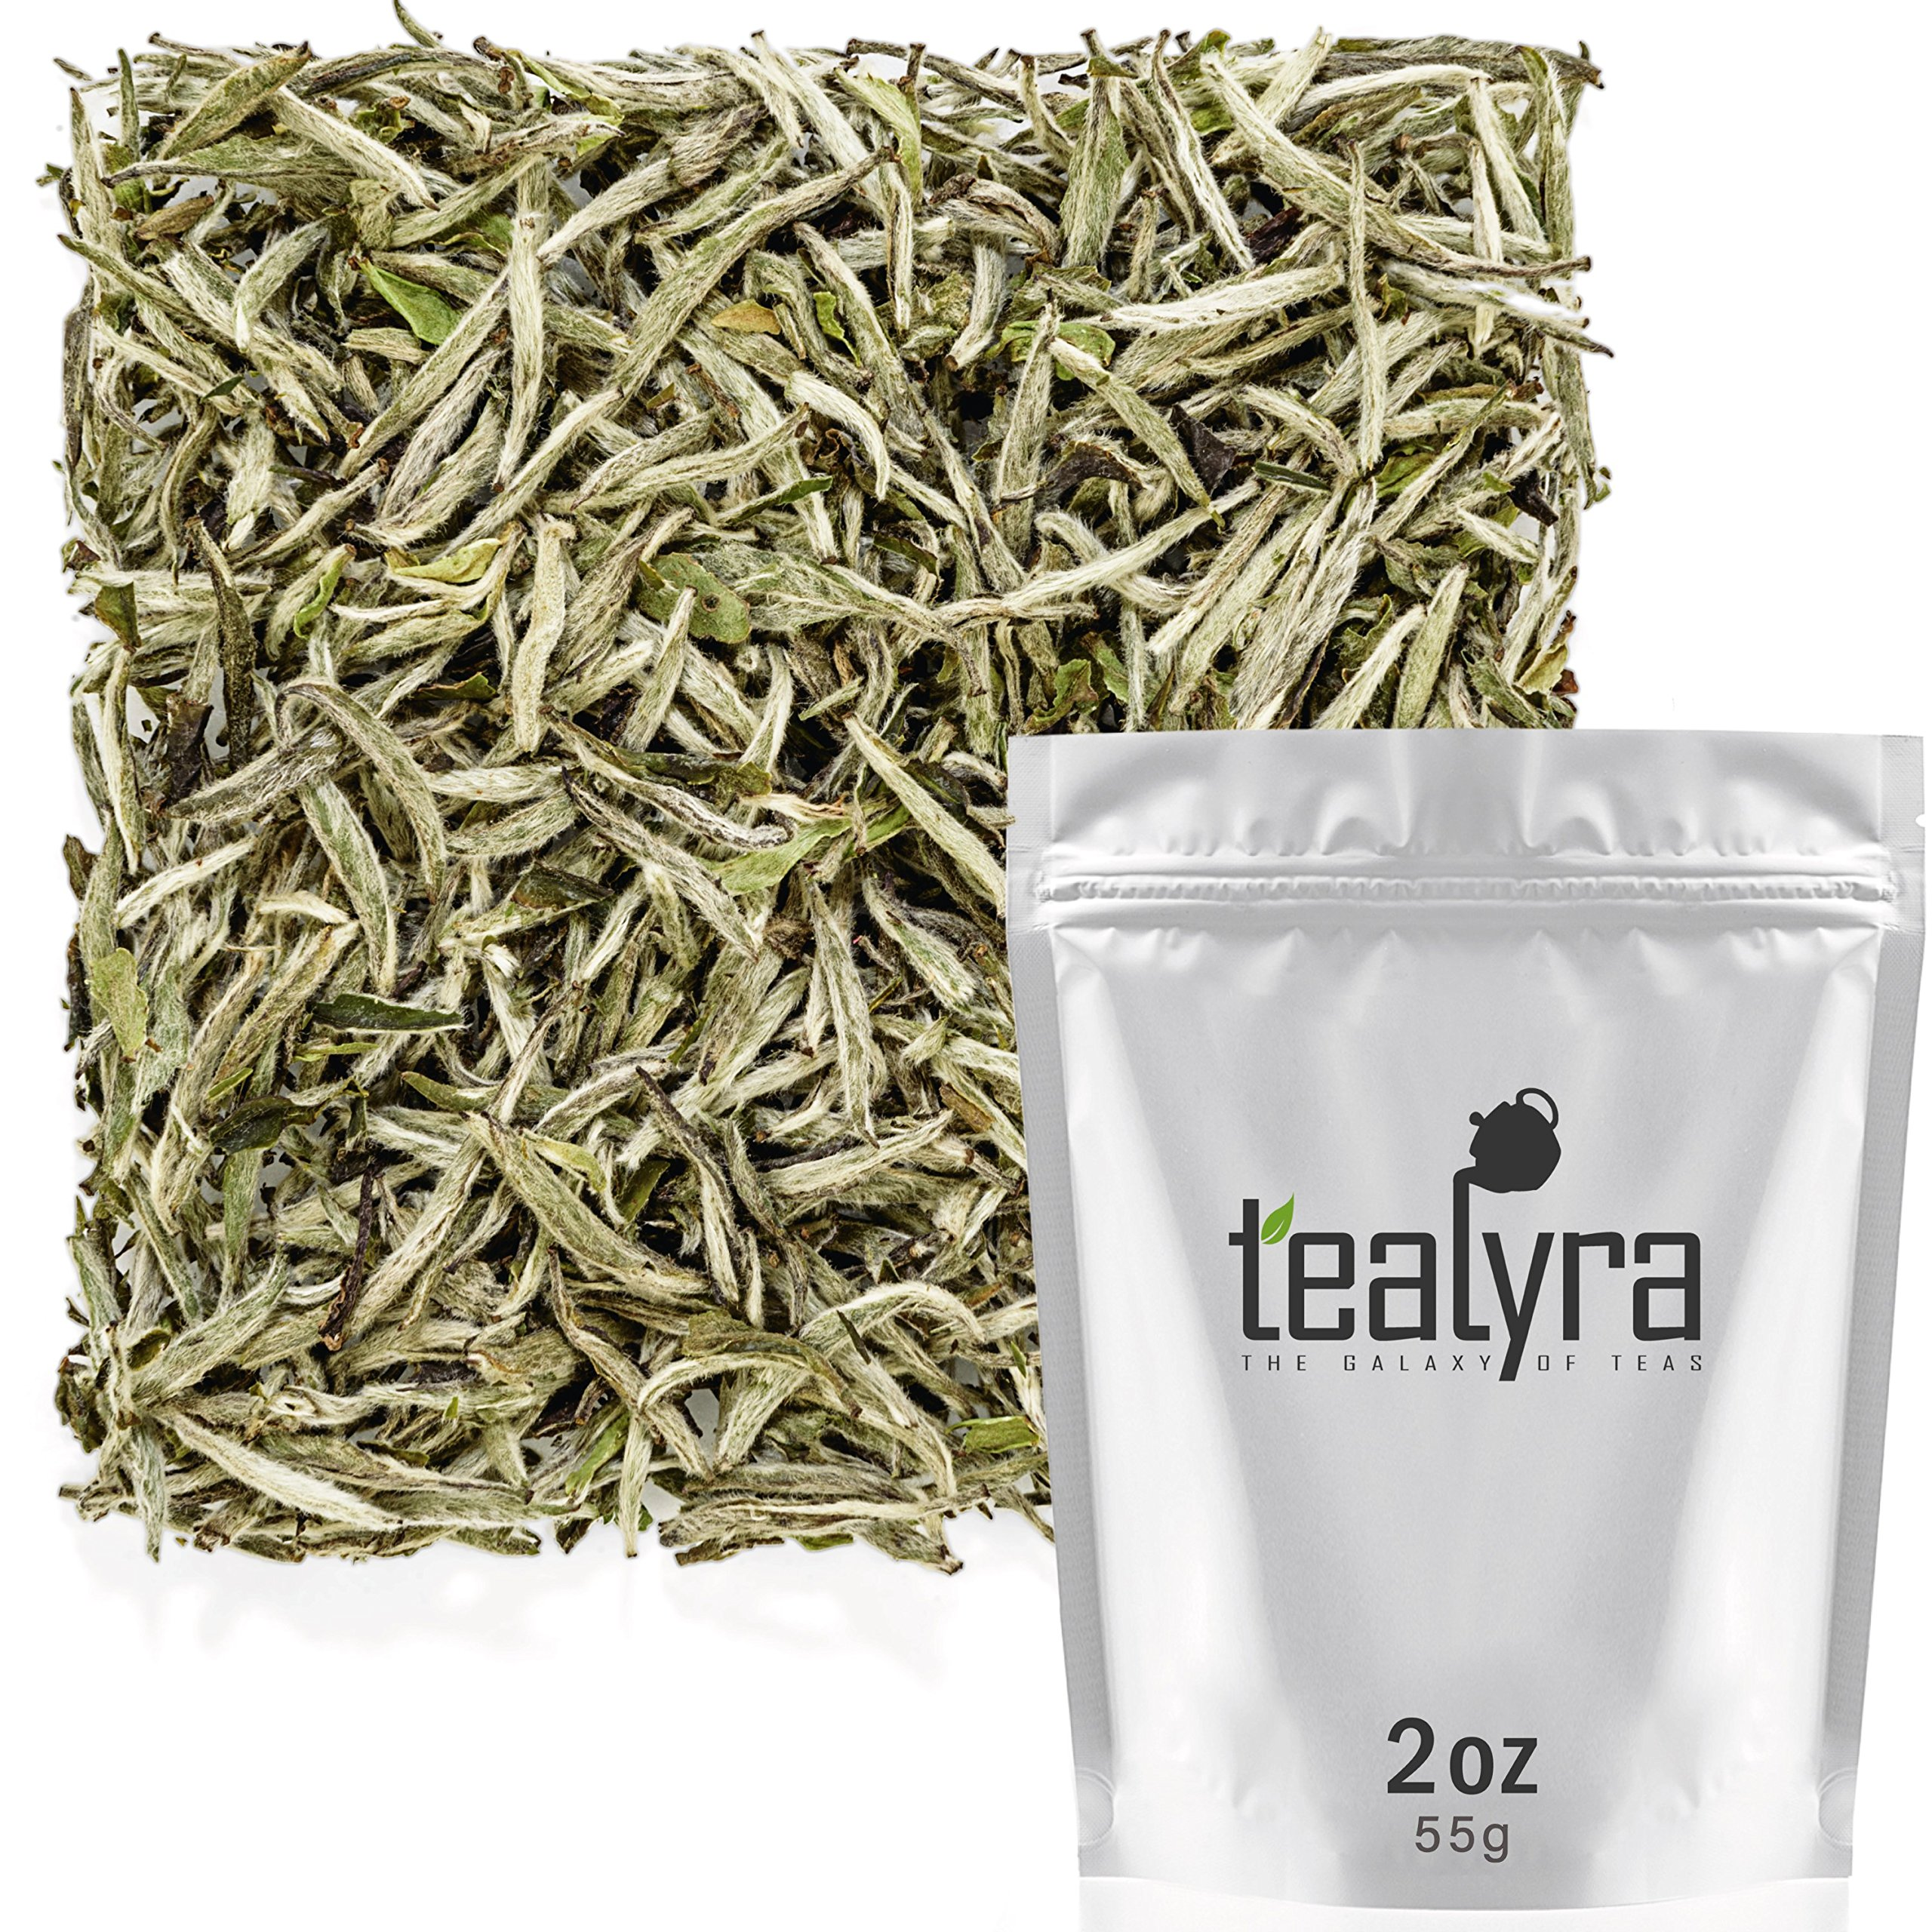 Tealyra - Premium White Silver Needle Tea - Bai Hao Yinzhen - Organically Grown in Fujian China - Superior Chinese Silver Tip White Tea - Loose Leaf Tea - Caffeine Level Low - 55g (2-ounce) by Tealyra